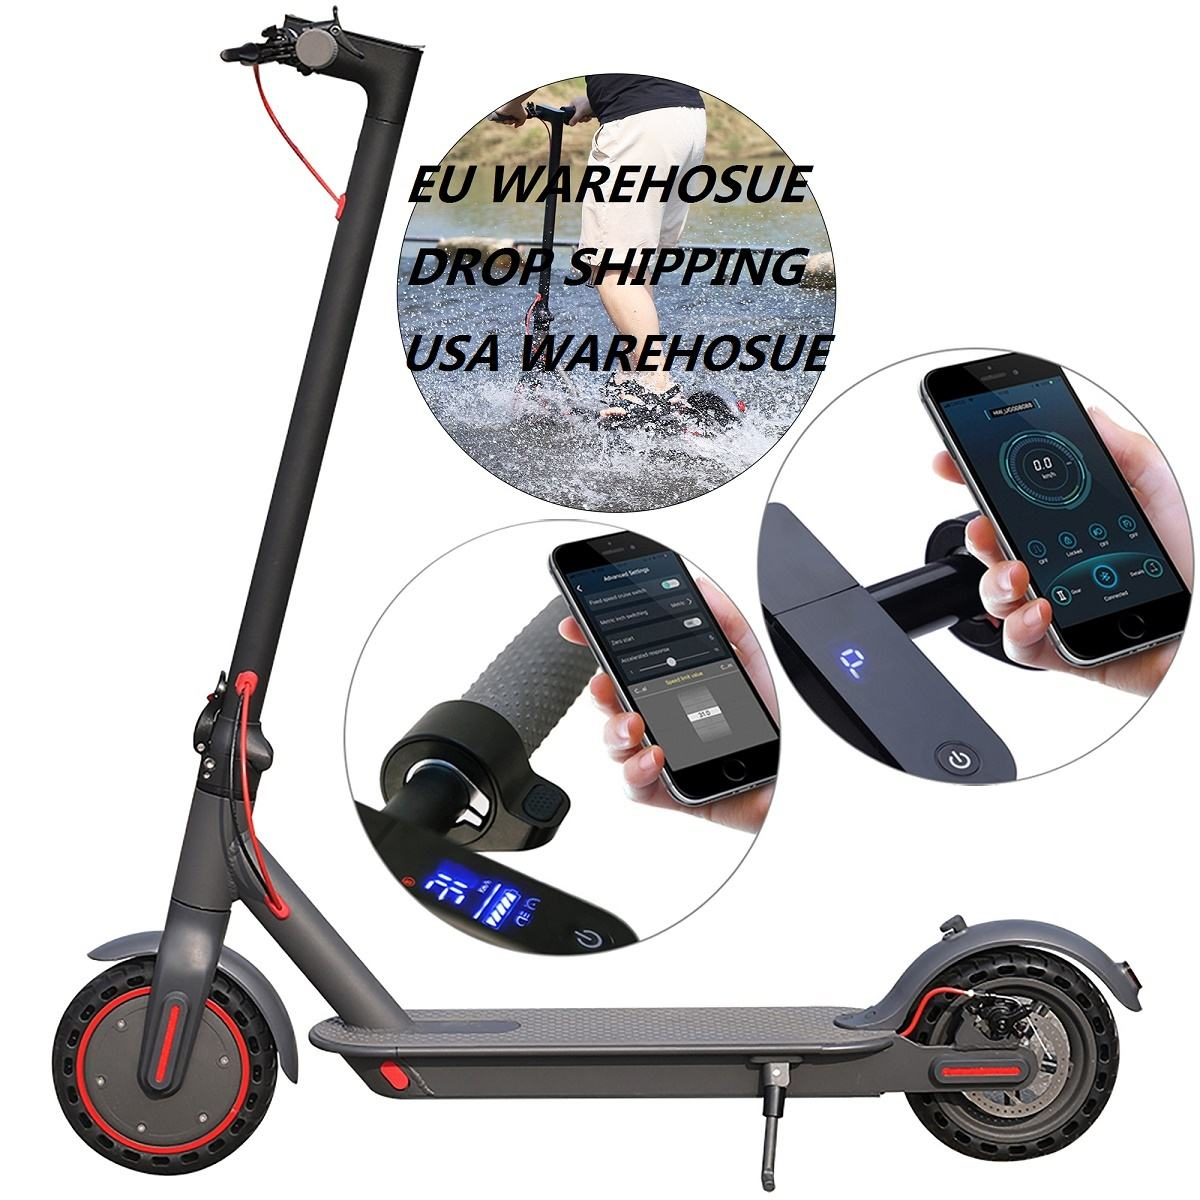 AOVOPRO Europe Warehouse Stock Drop Shipping Foldable Adult electric balance scooter Smart 31KM/H 35KM Range Electric Scooter